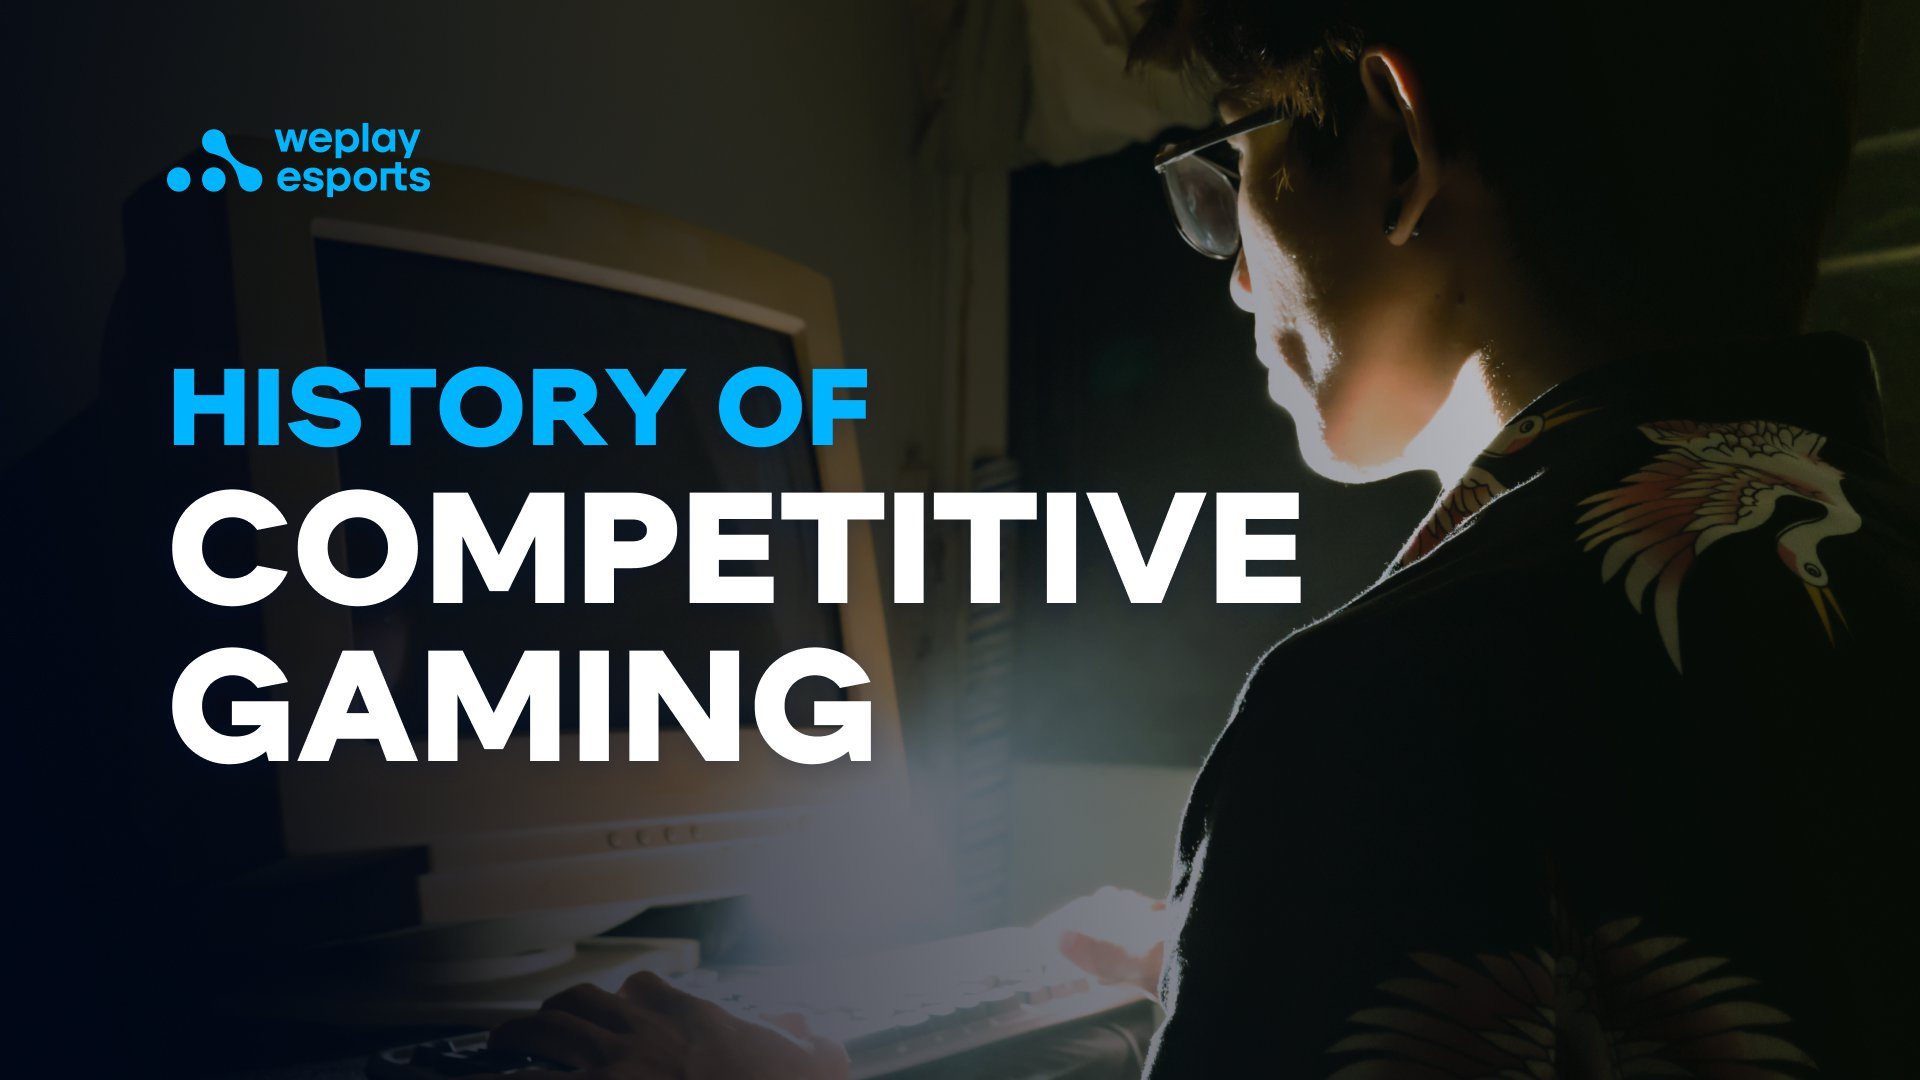 History of Competitive Gaming